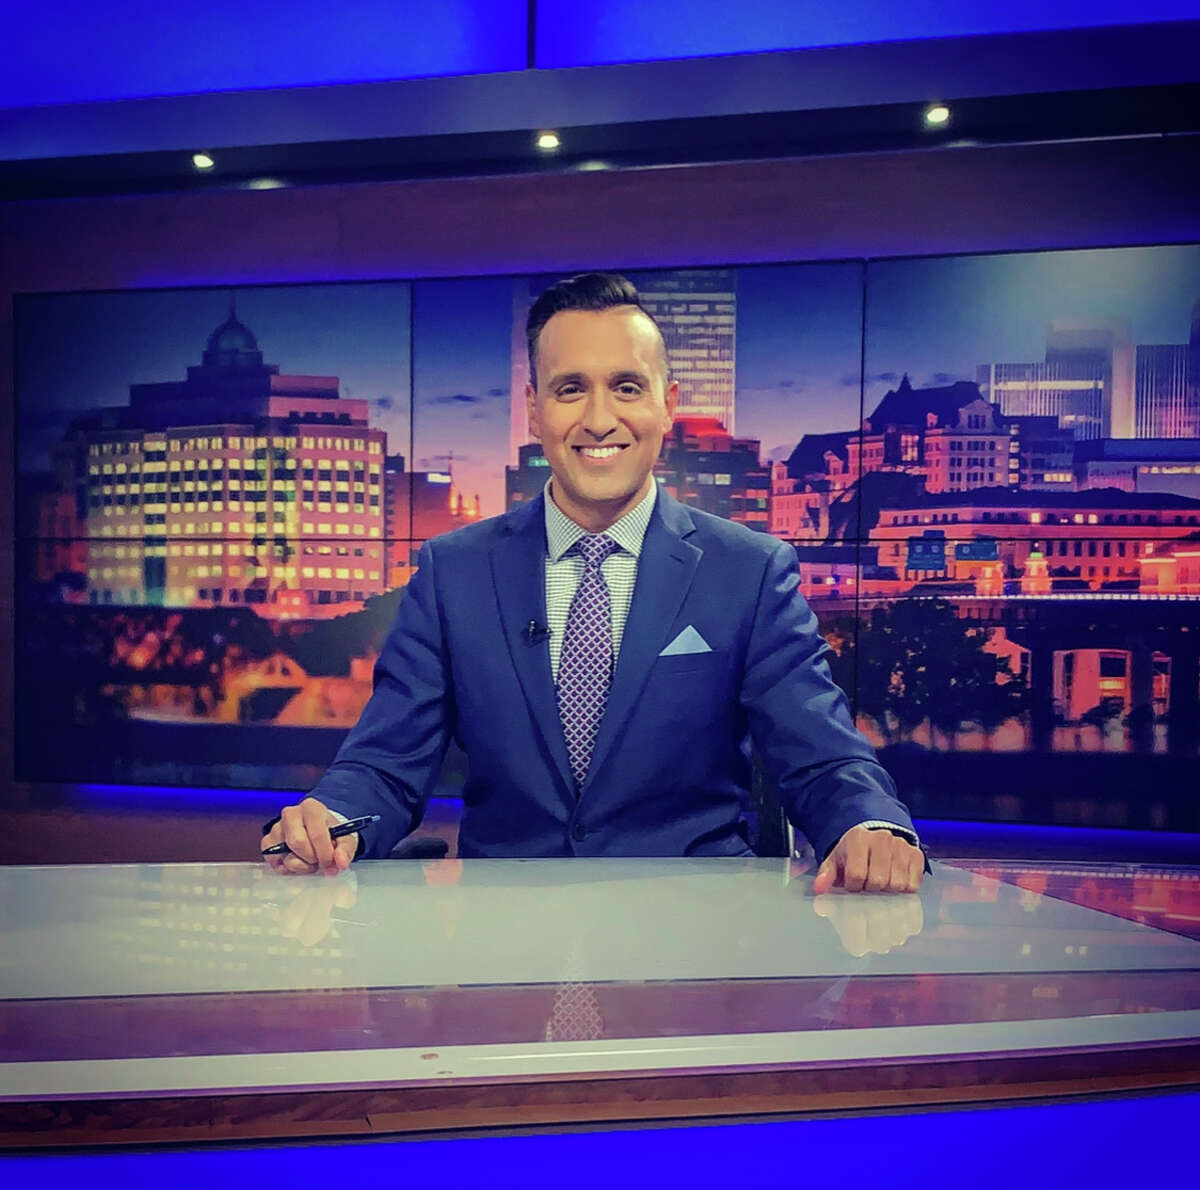 After more than a decade in local television news, Solomon Syed is leaving Spectrum News. His last day is September 3.